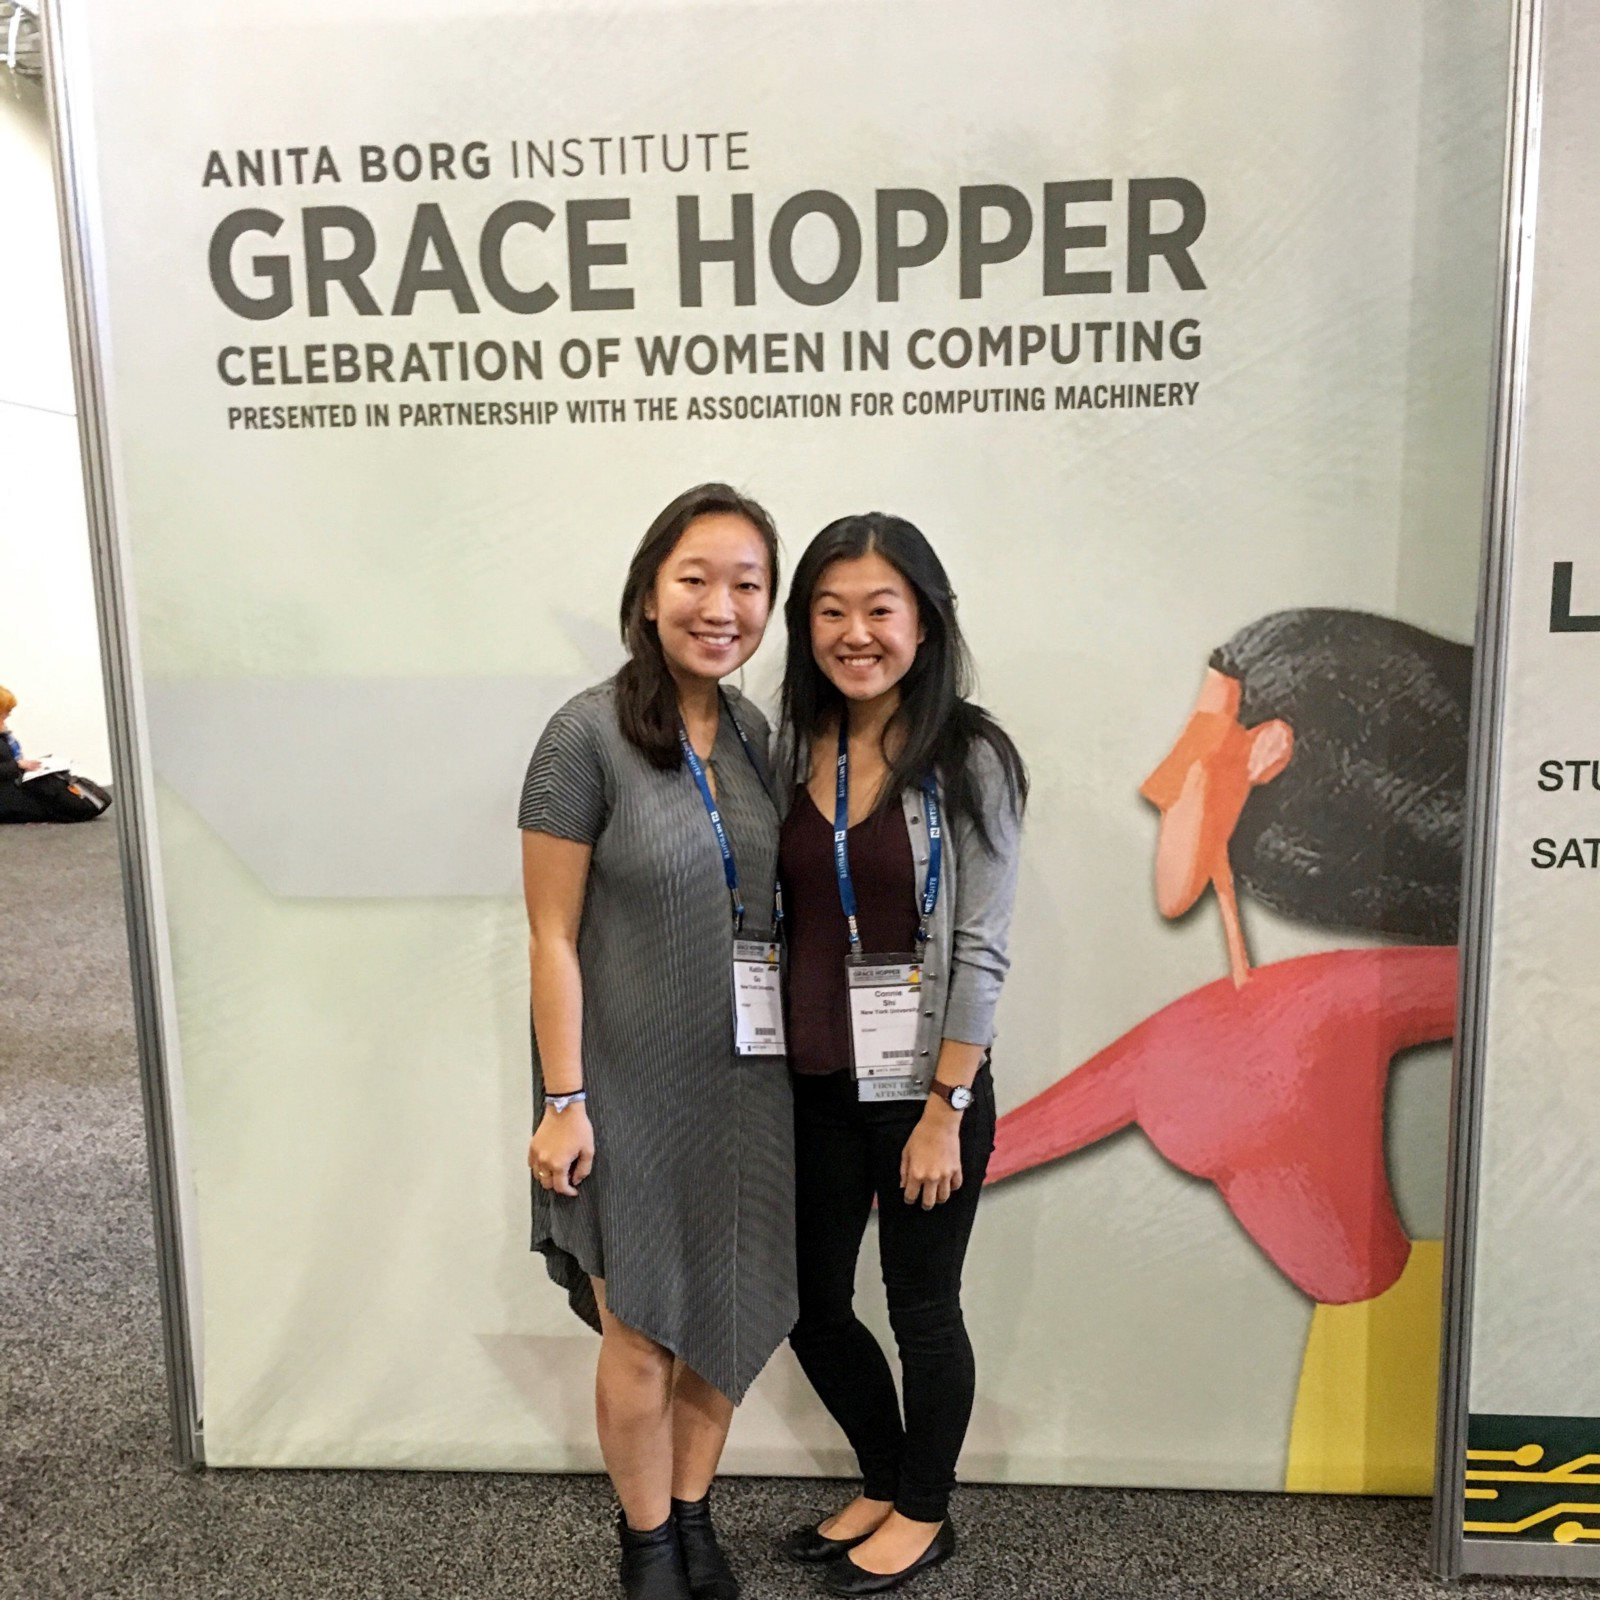 kaitlin and i both received scholarship funding to attend the conference from nyu computer science department through our involvement in the executive board - Grace Hopper Resume Database